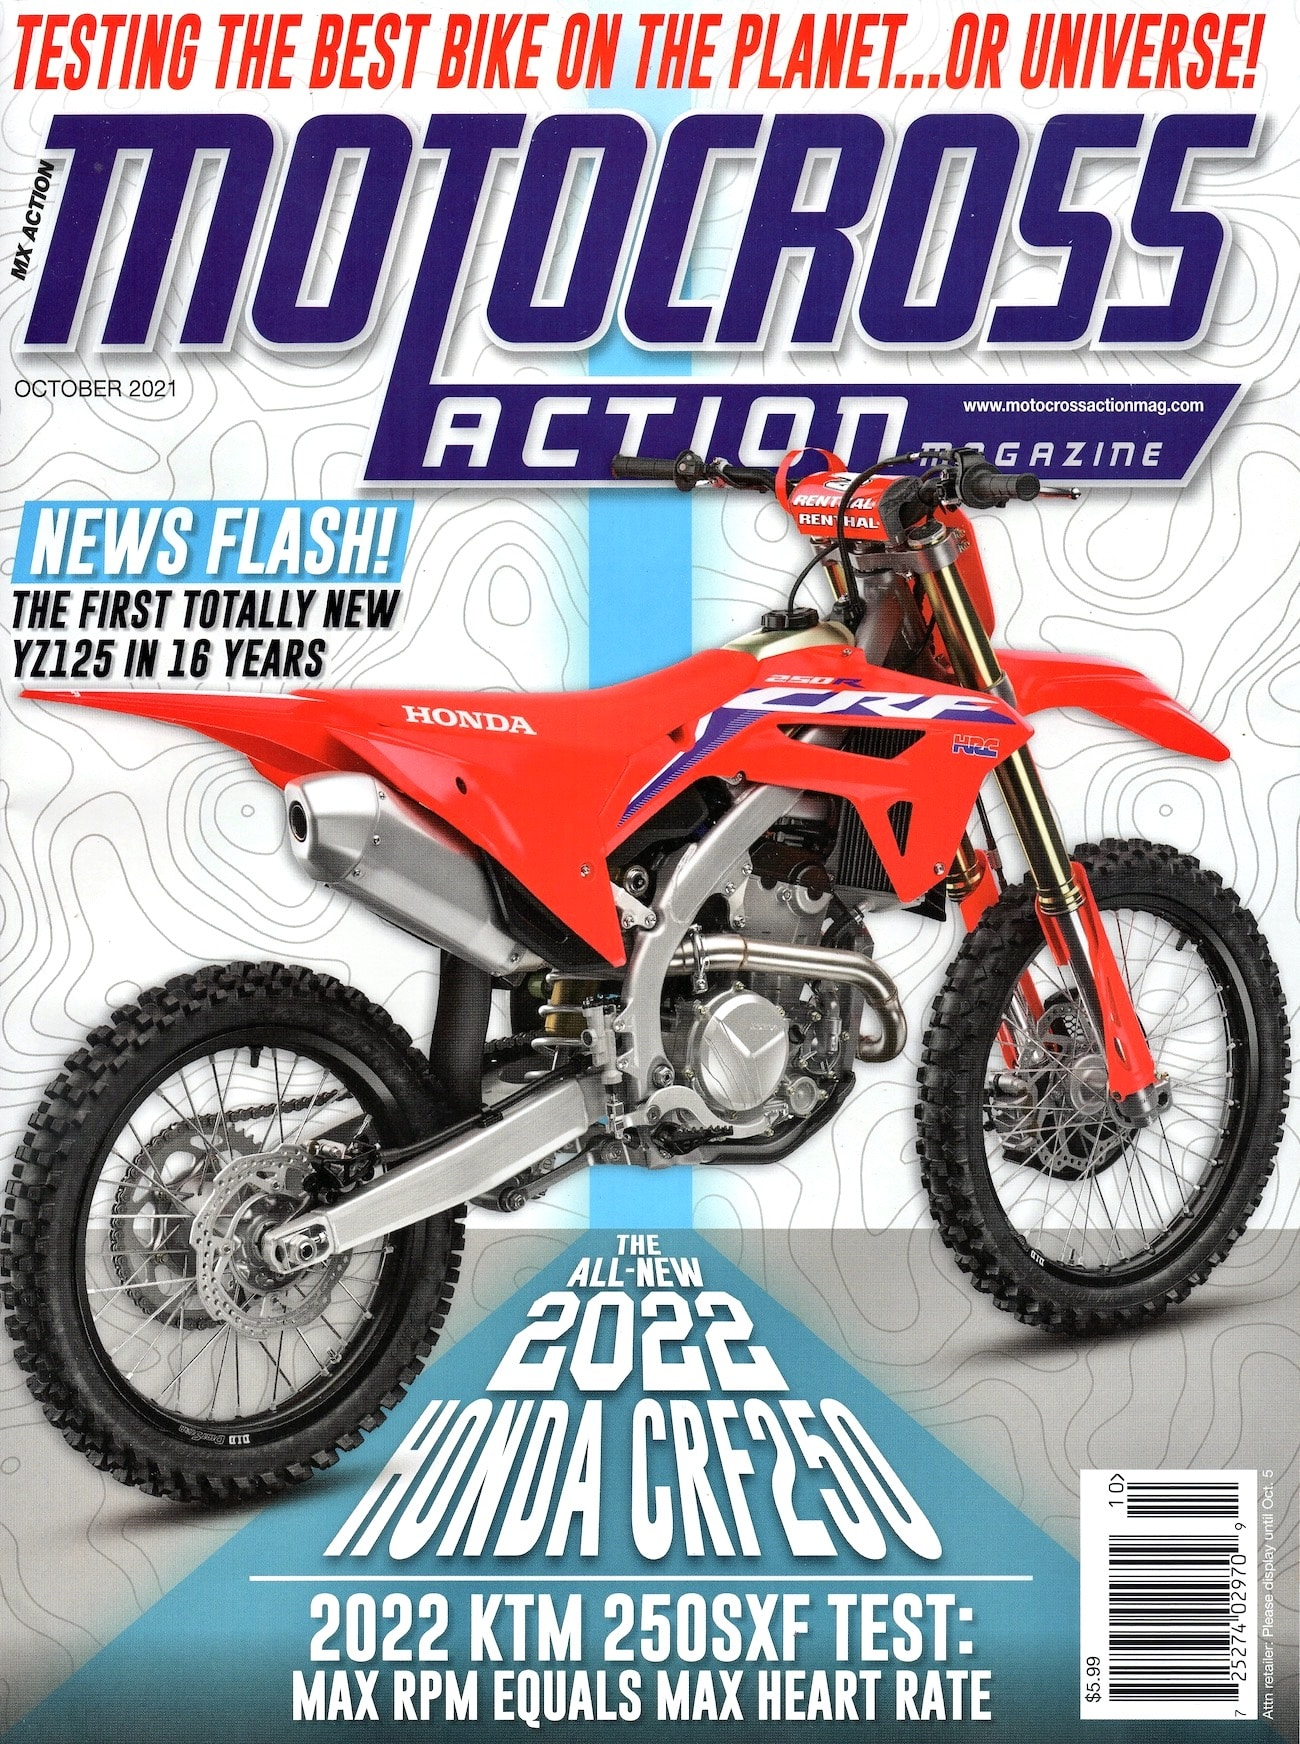 Have You Seen The Newest Issue Of Mxa? It Is Jam-packed Full Of Motocross, Motocross And More Motocross